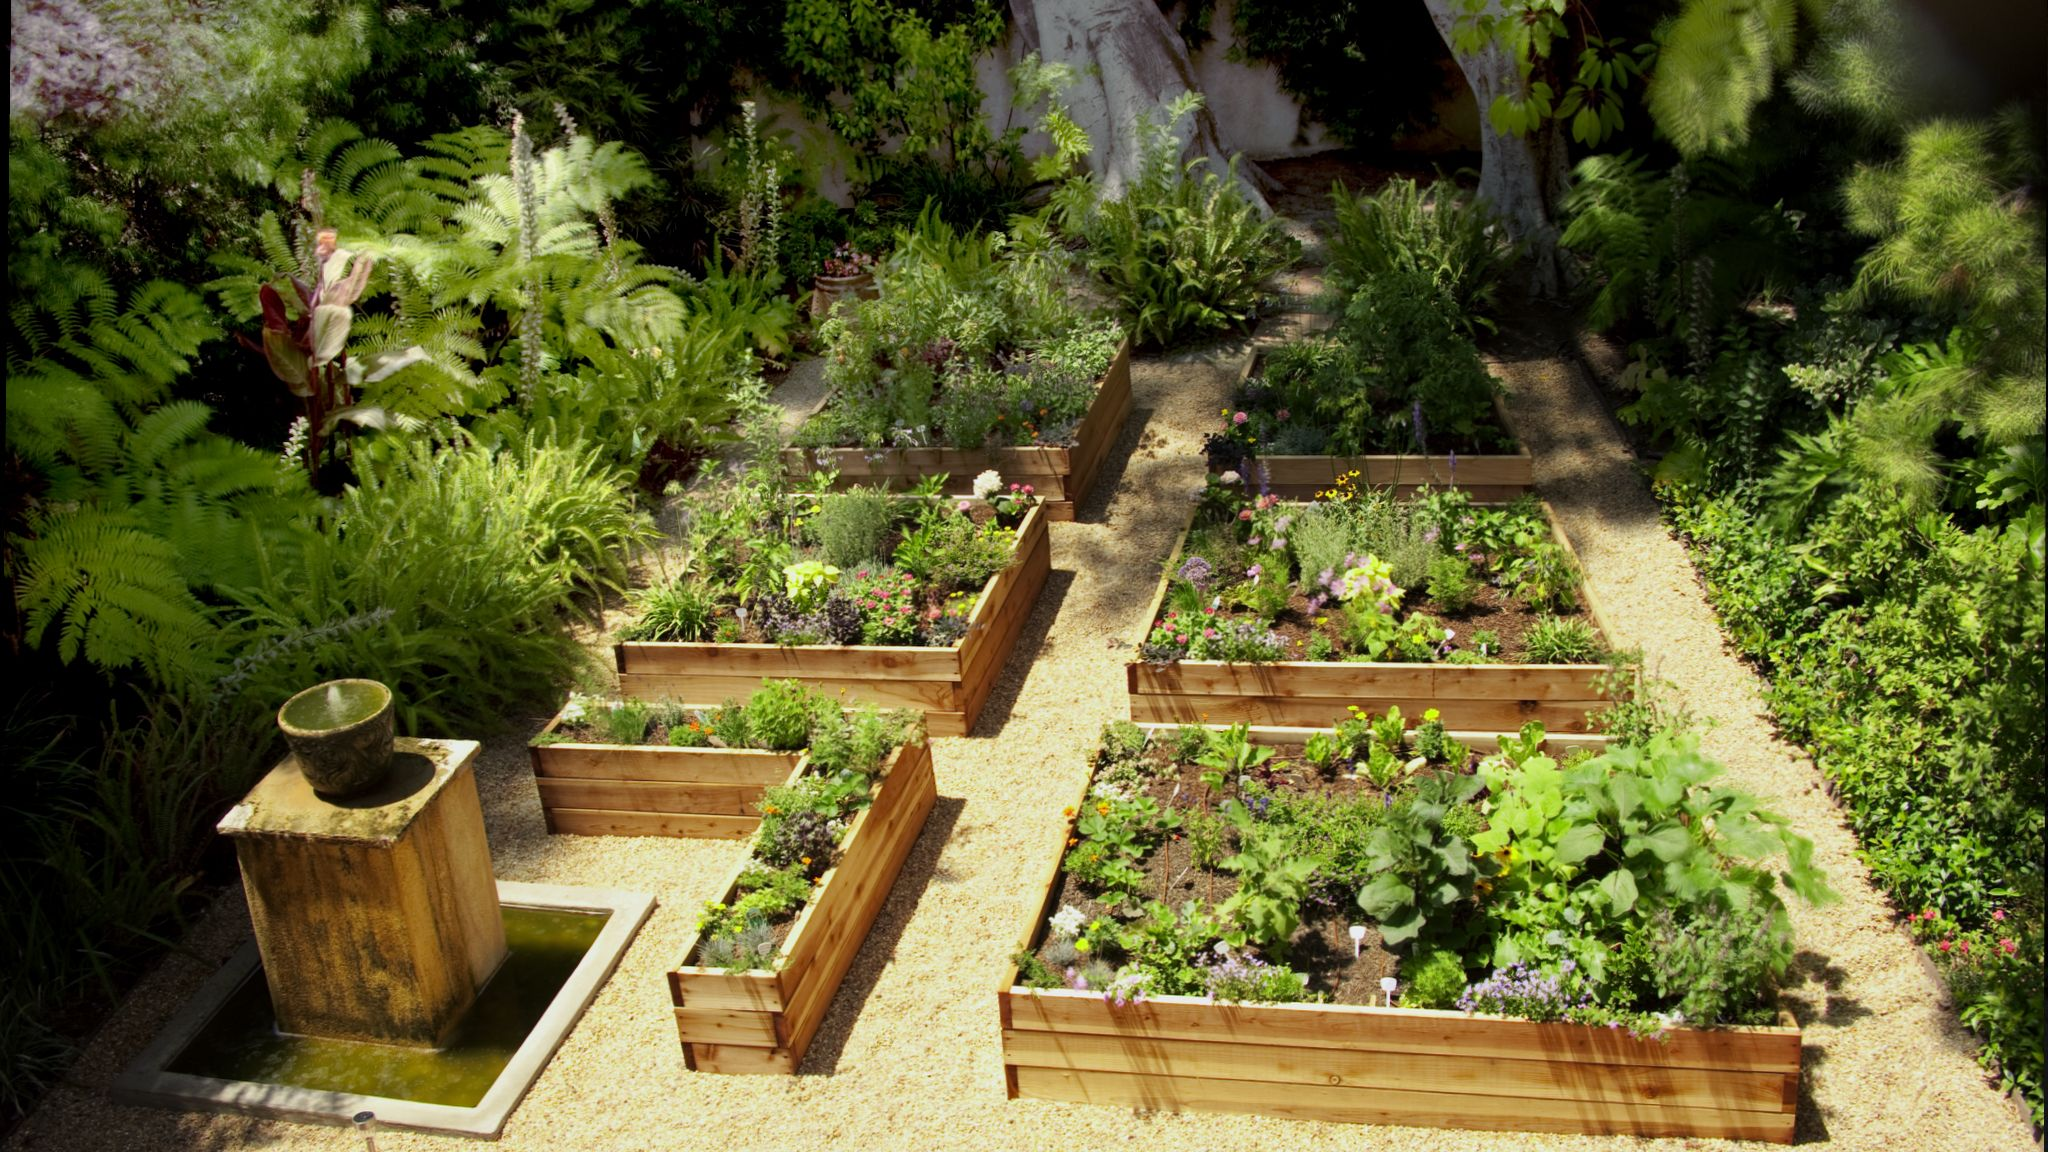 Planting a Vegetable Garden can be so rewarding, it provides food, exercise, a feeling of accomplishment and responsibilities. Check our our guide now!